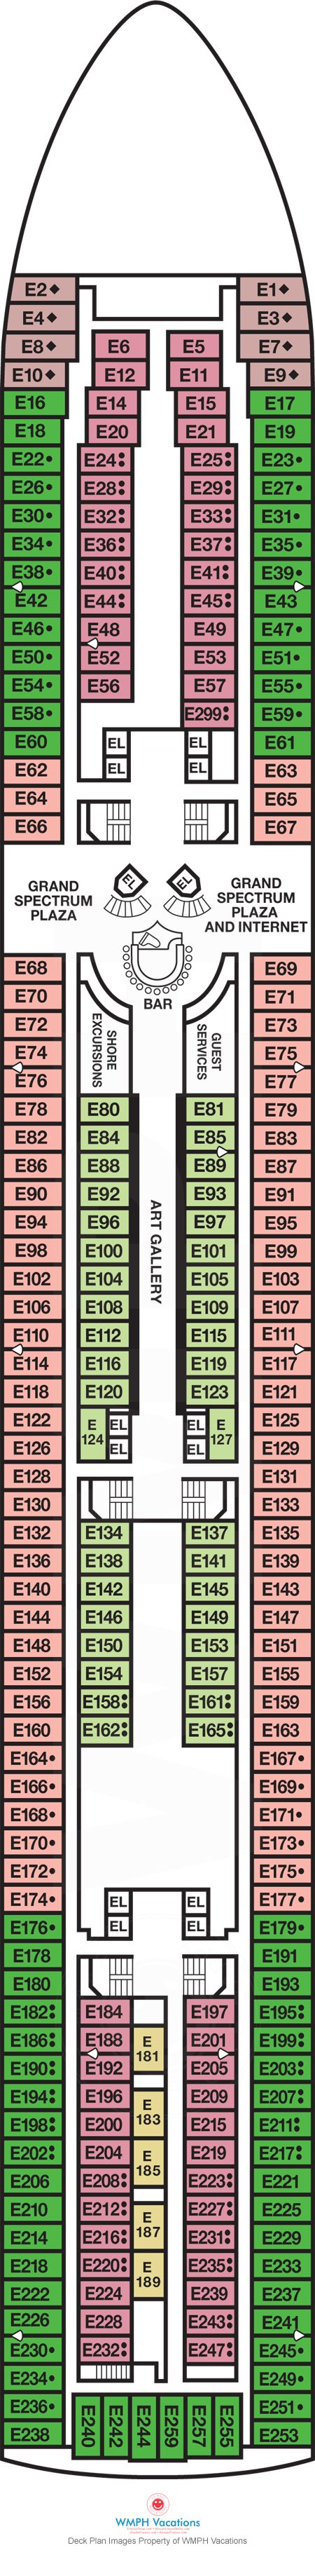 Carnival fantasy deck plans floor plans on cruisecheap carnival fantasy deck plans floor plans on cruisecheap mobile goingwent there pinterest carnival fantasy cruises and bahamas cruise baanklon Images